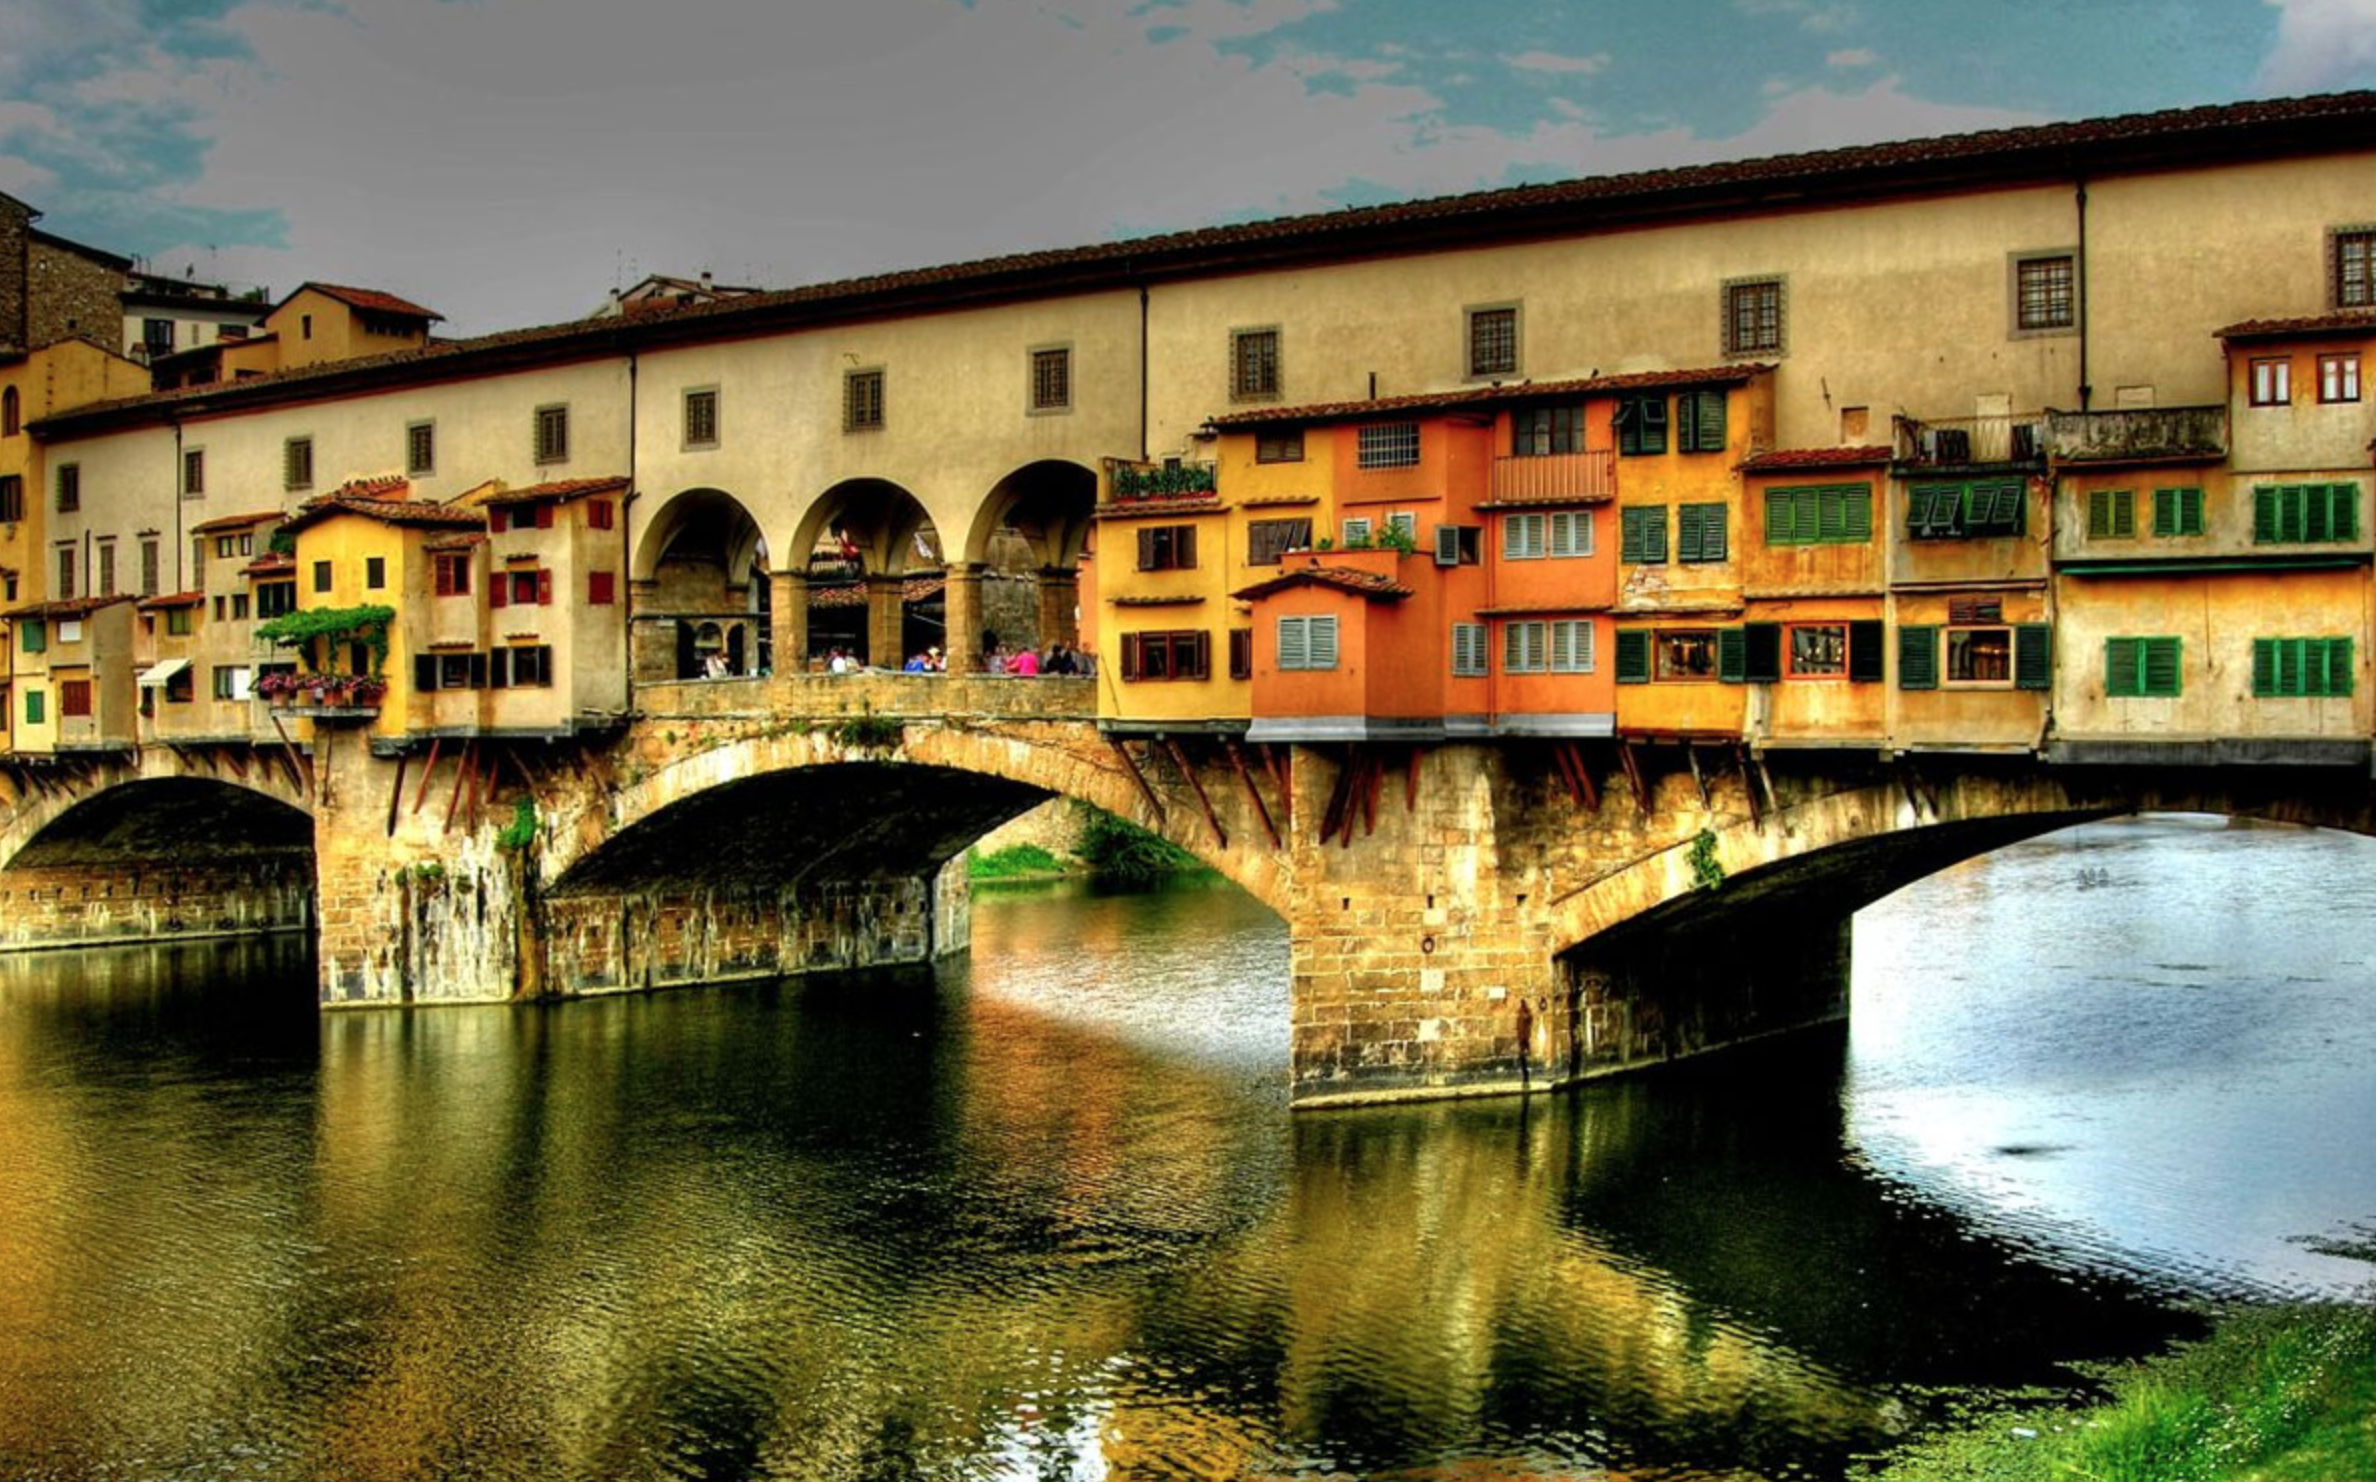 The Ponte Vecchio spans the Arno and features shops and restaurants.